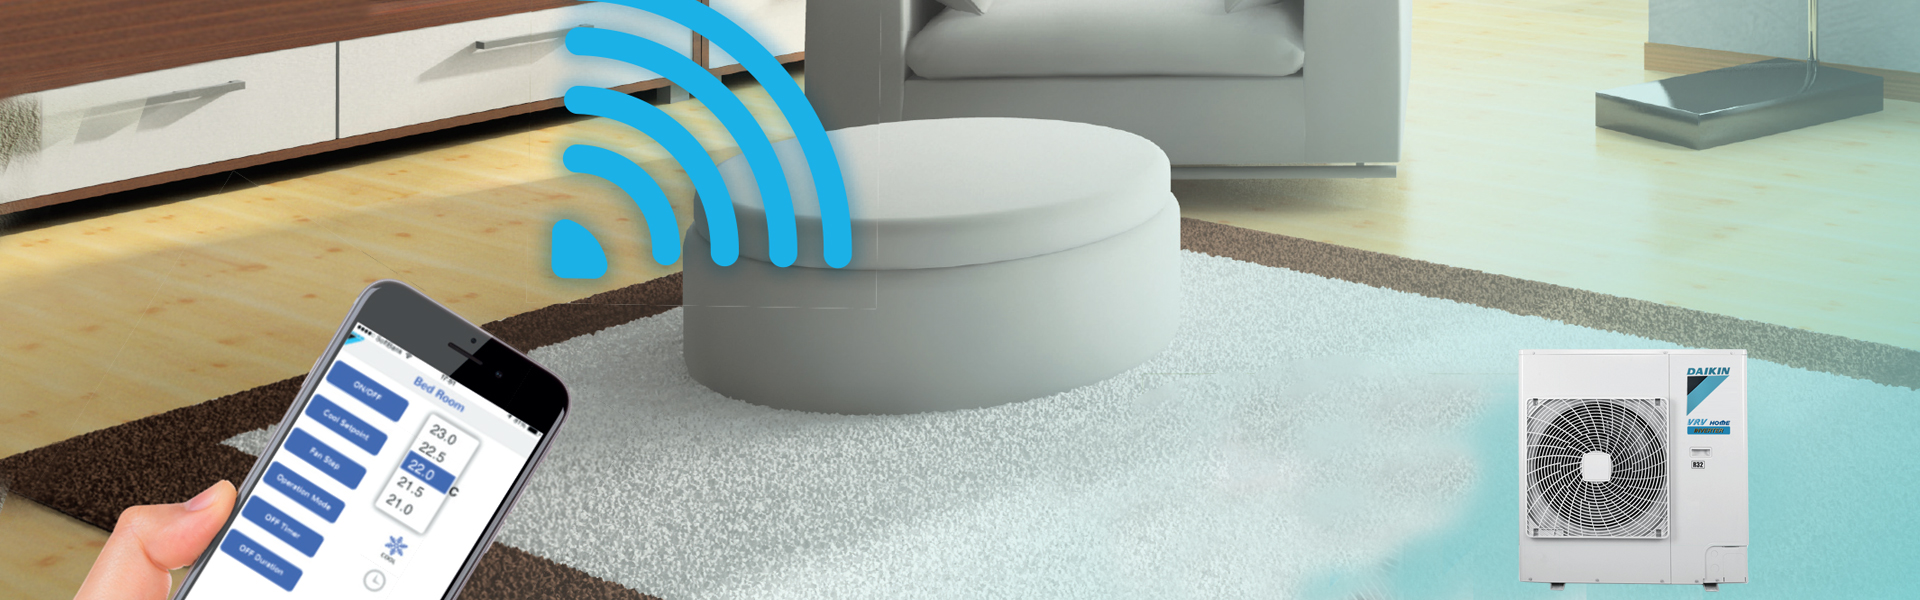 SMART CONTROL FOR RESIDENTIAL